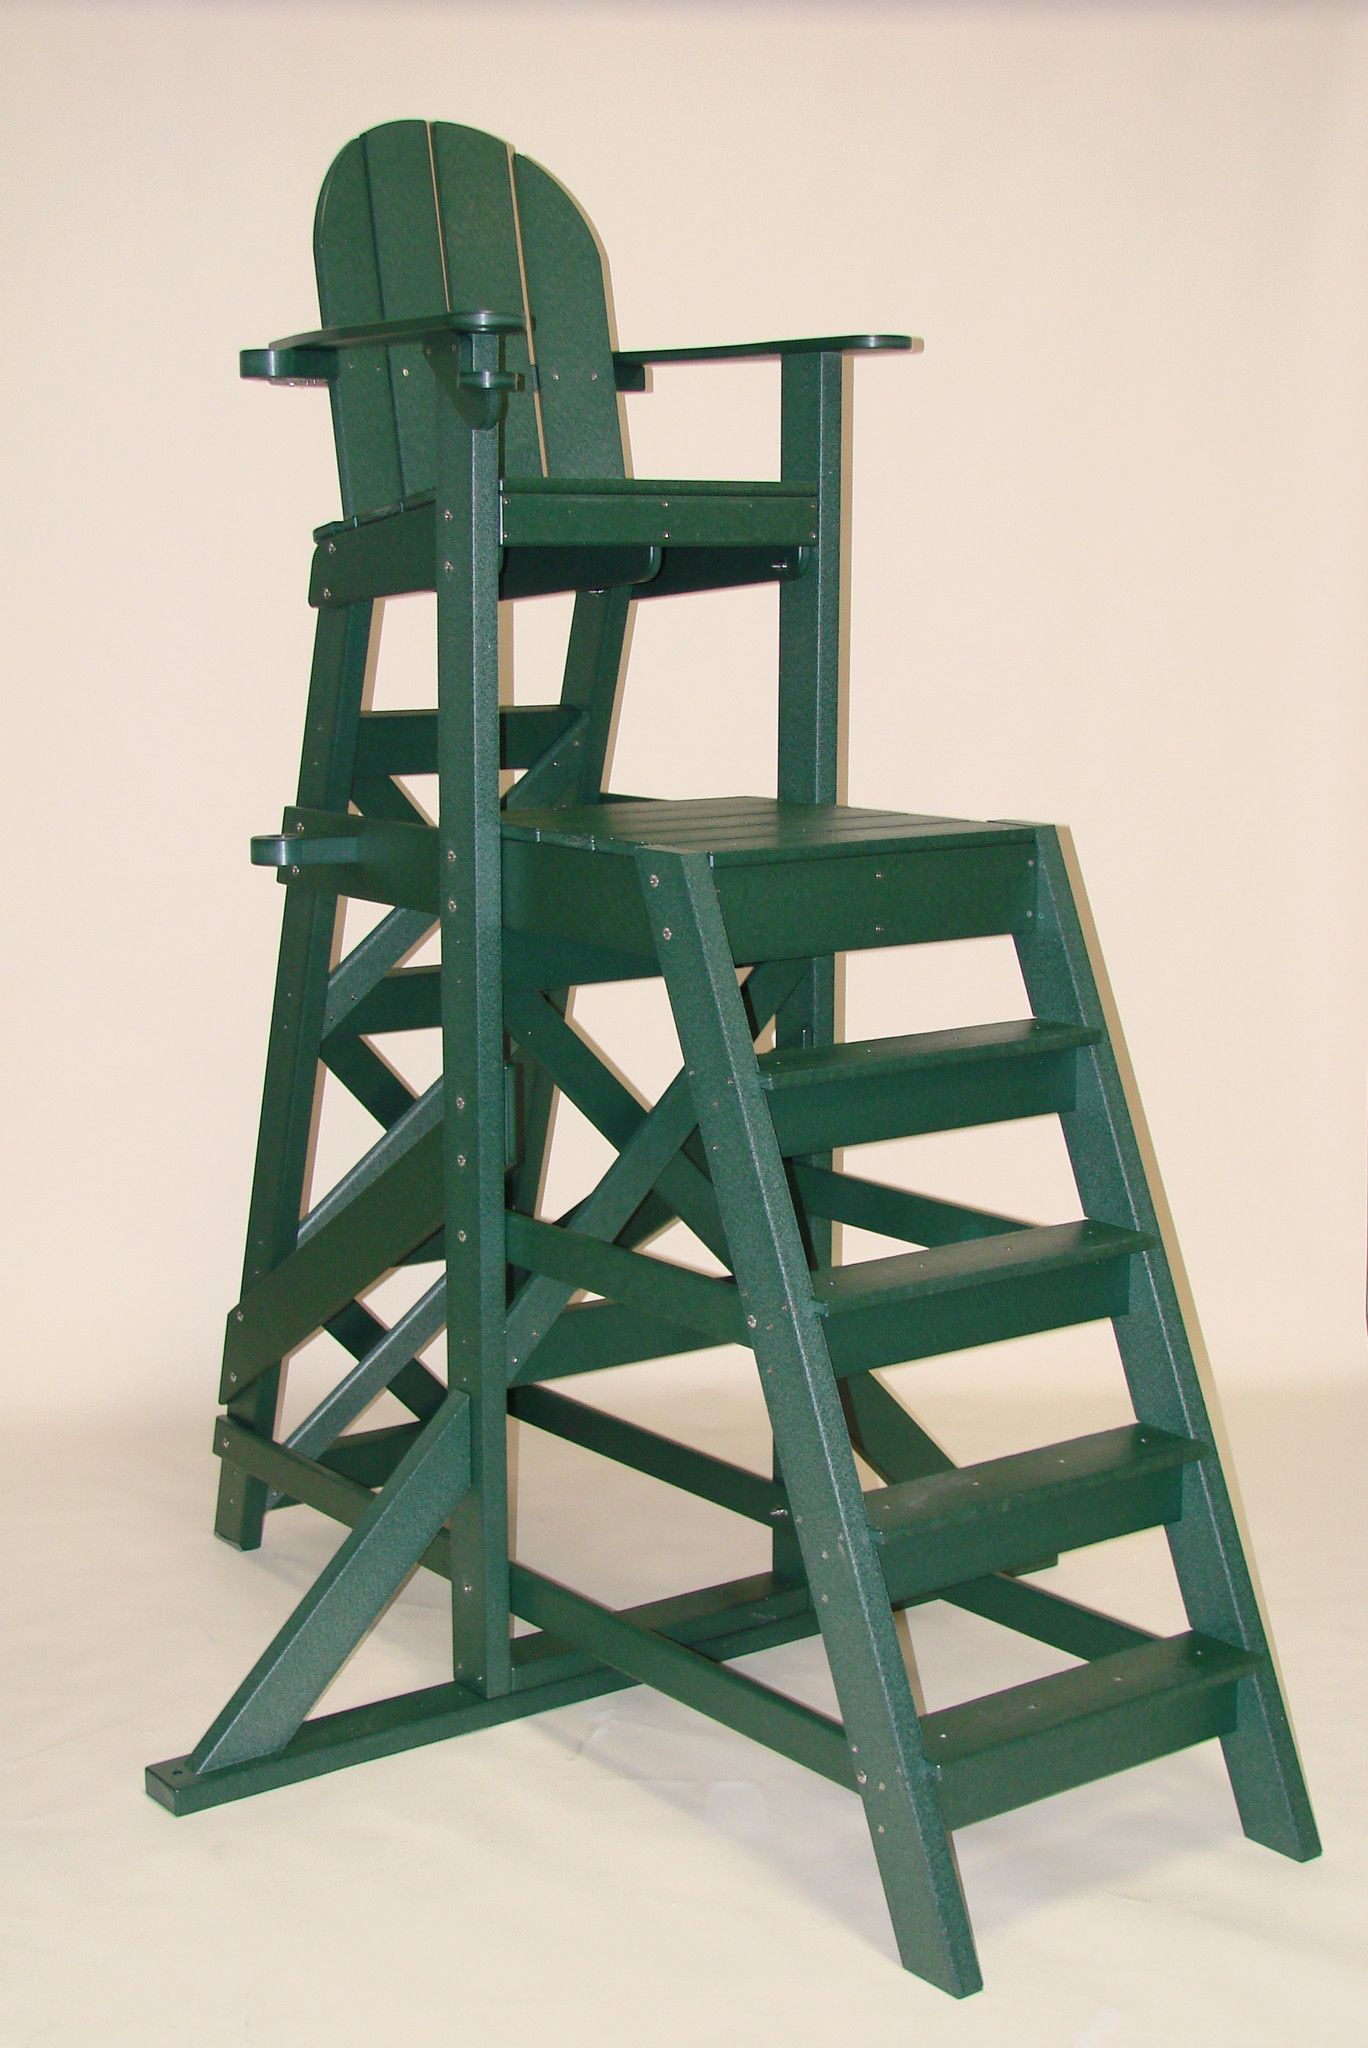 Tailwind Furniture Recycled Plastic TLG535 Tall Lifeguard Chair   With  Front Ladder